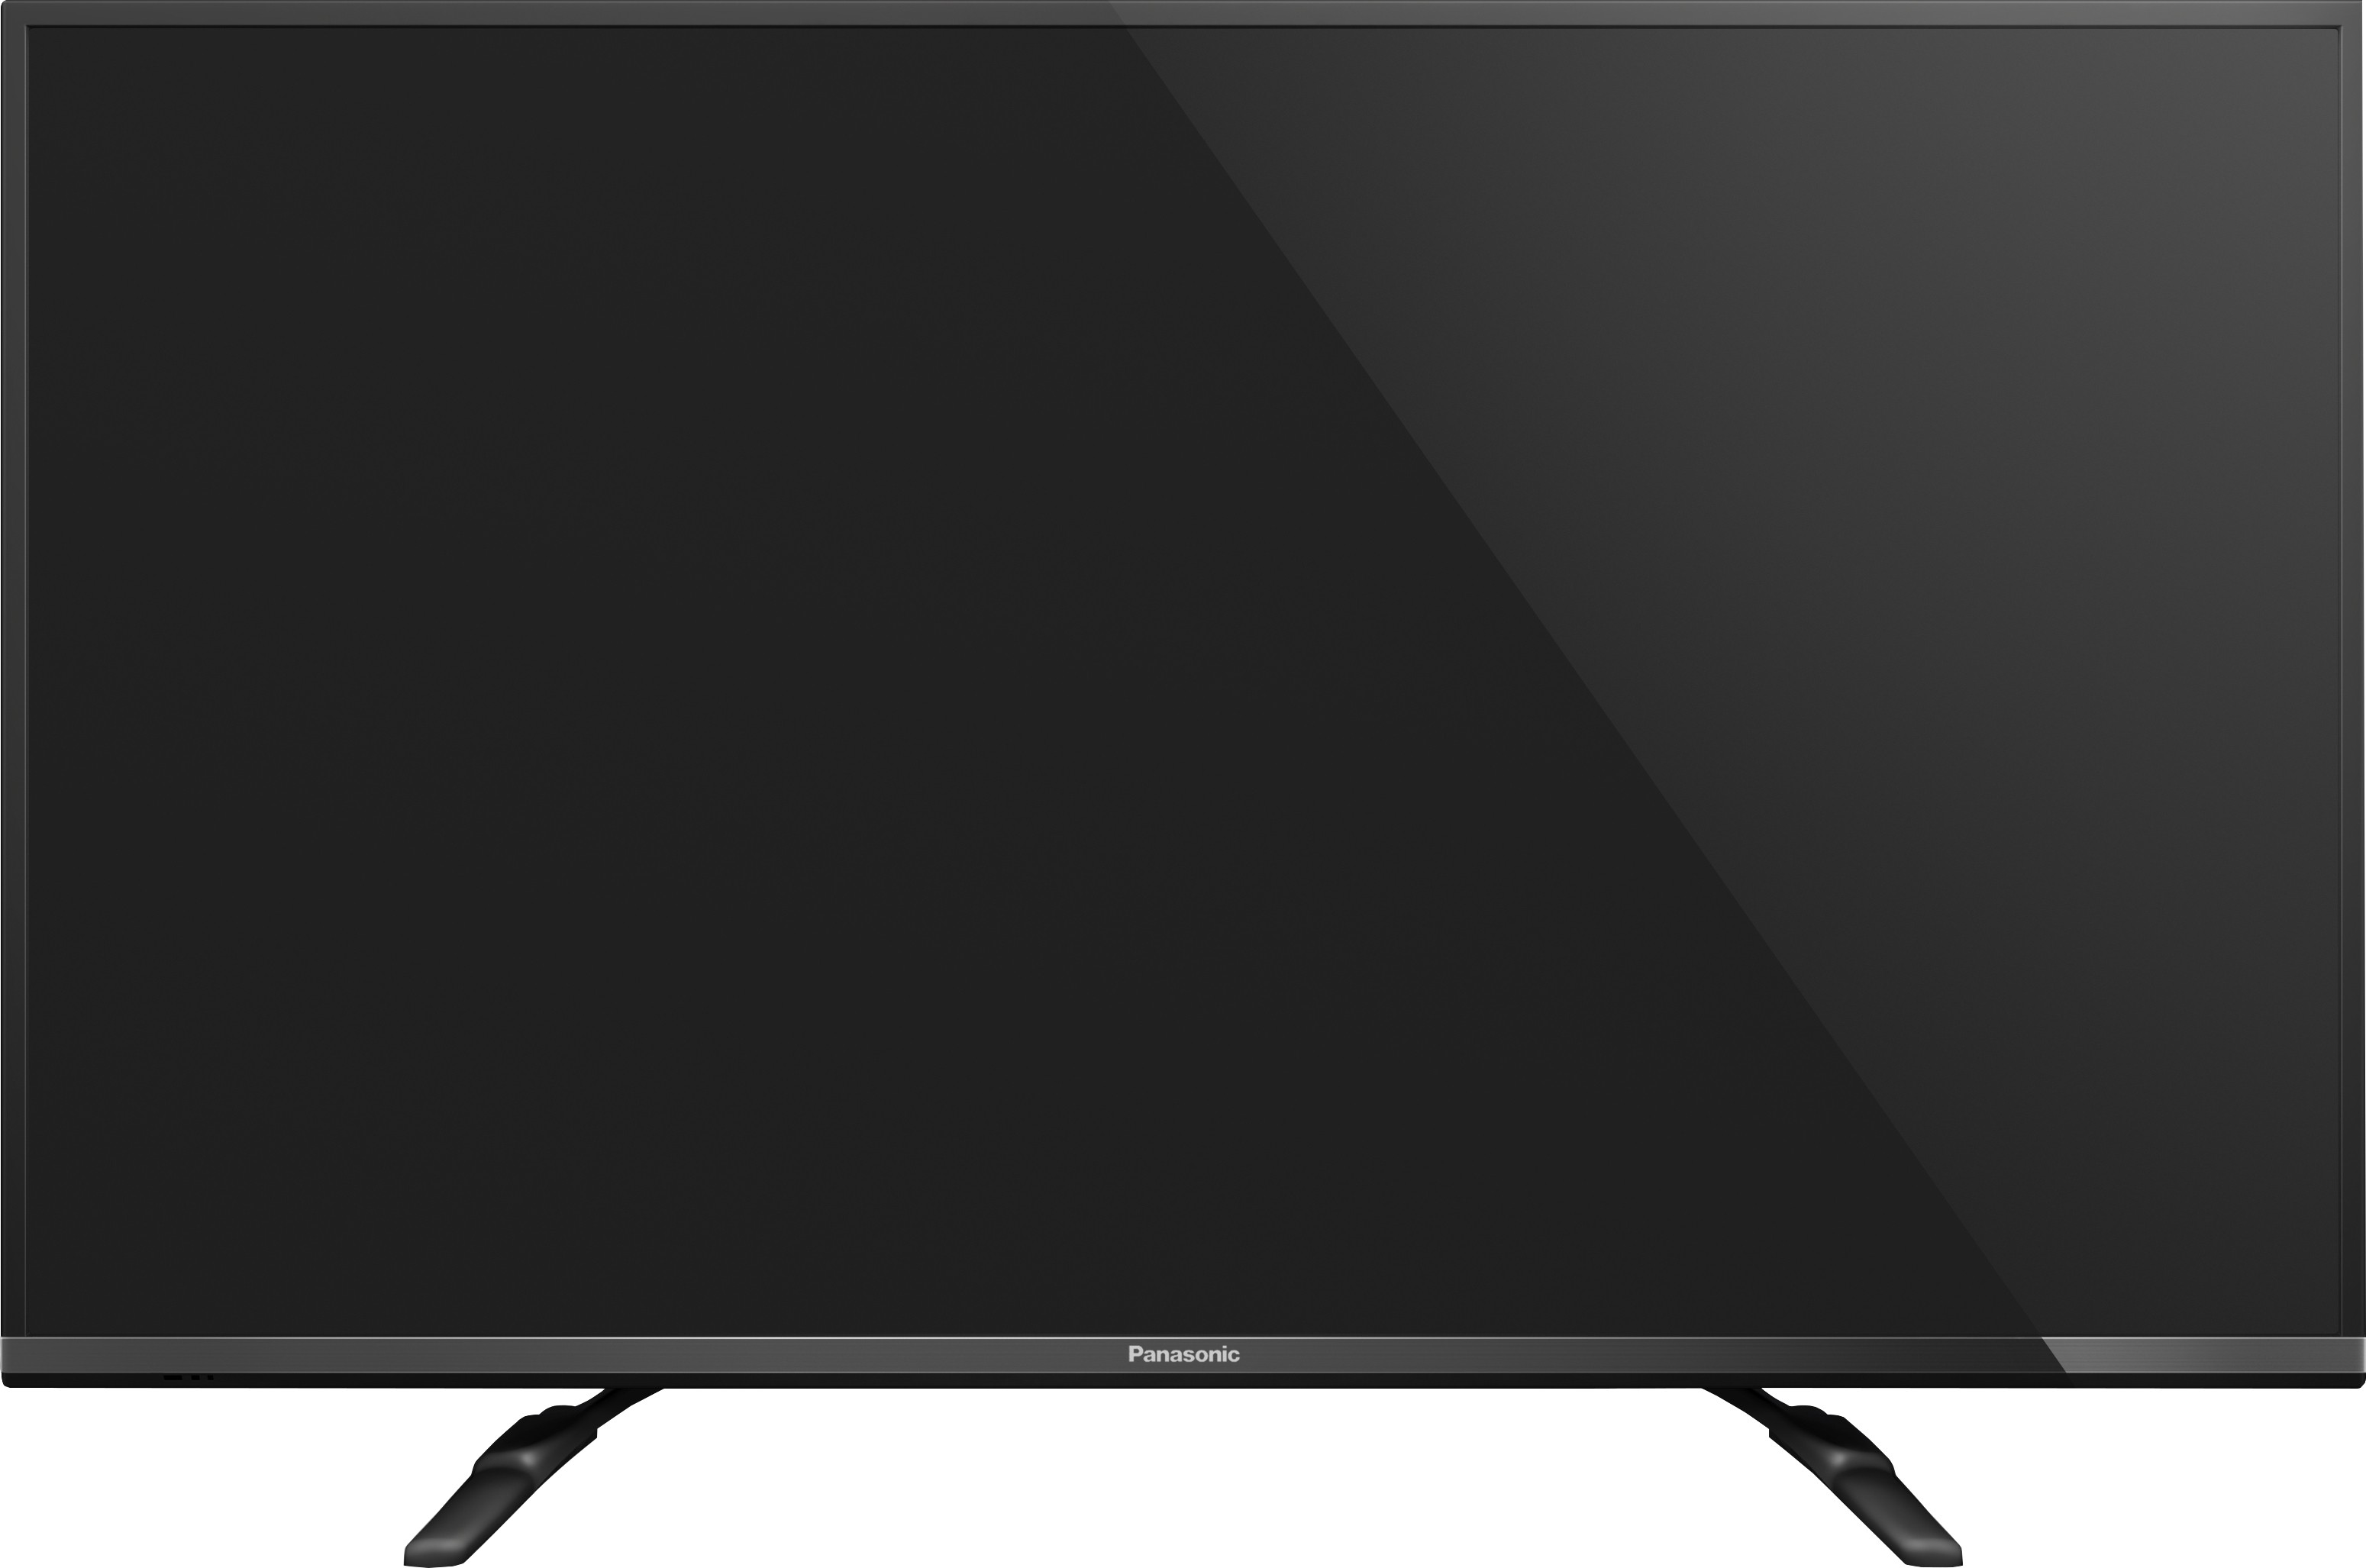 PANASONIC TH 50C410D 50 Inches Full HD LED TV